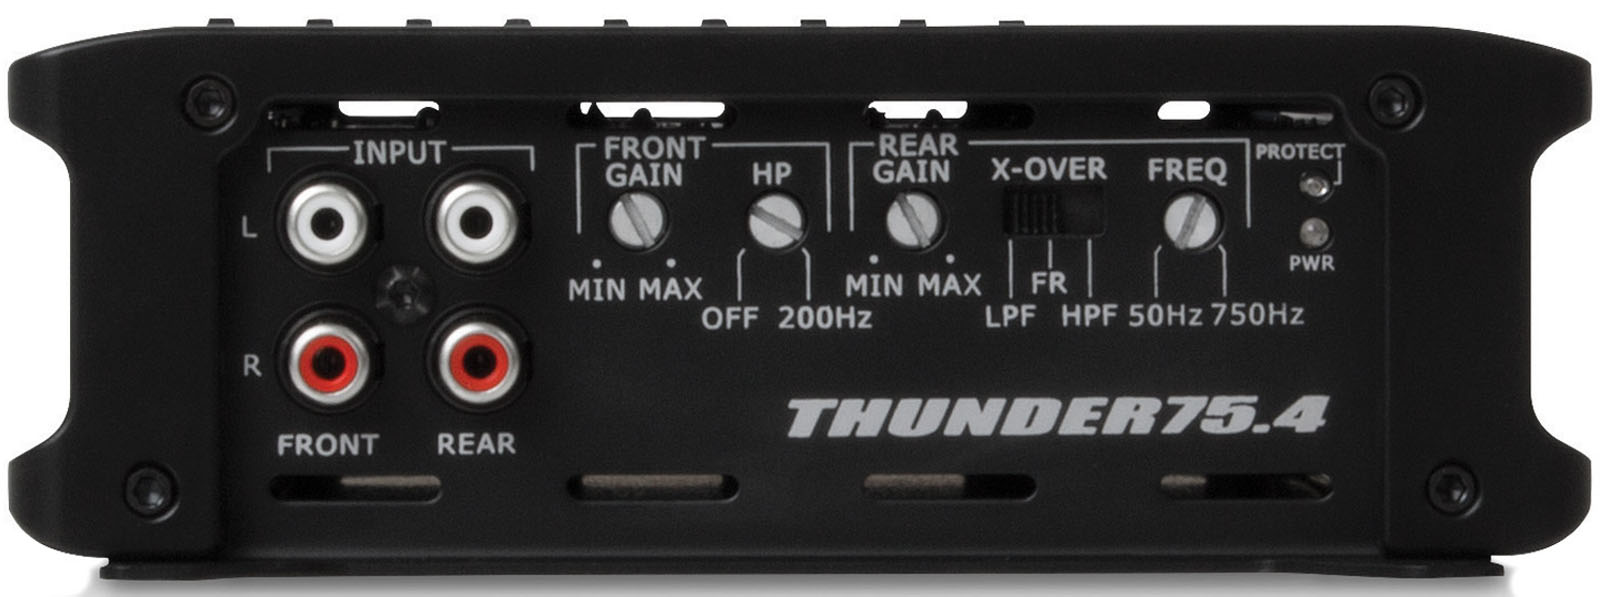 Car Amplifier Tuning And Features Mtx Audio Serious About Sound 3khz Low Pass Filter Circuit Diagram Super Thunder754 4 Channel